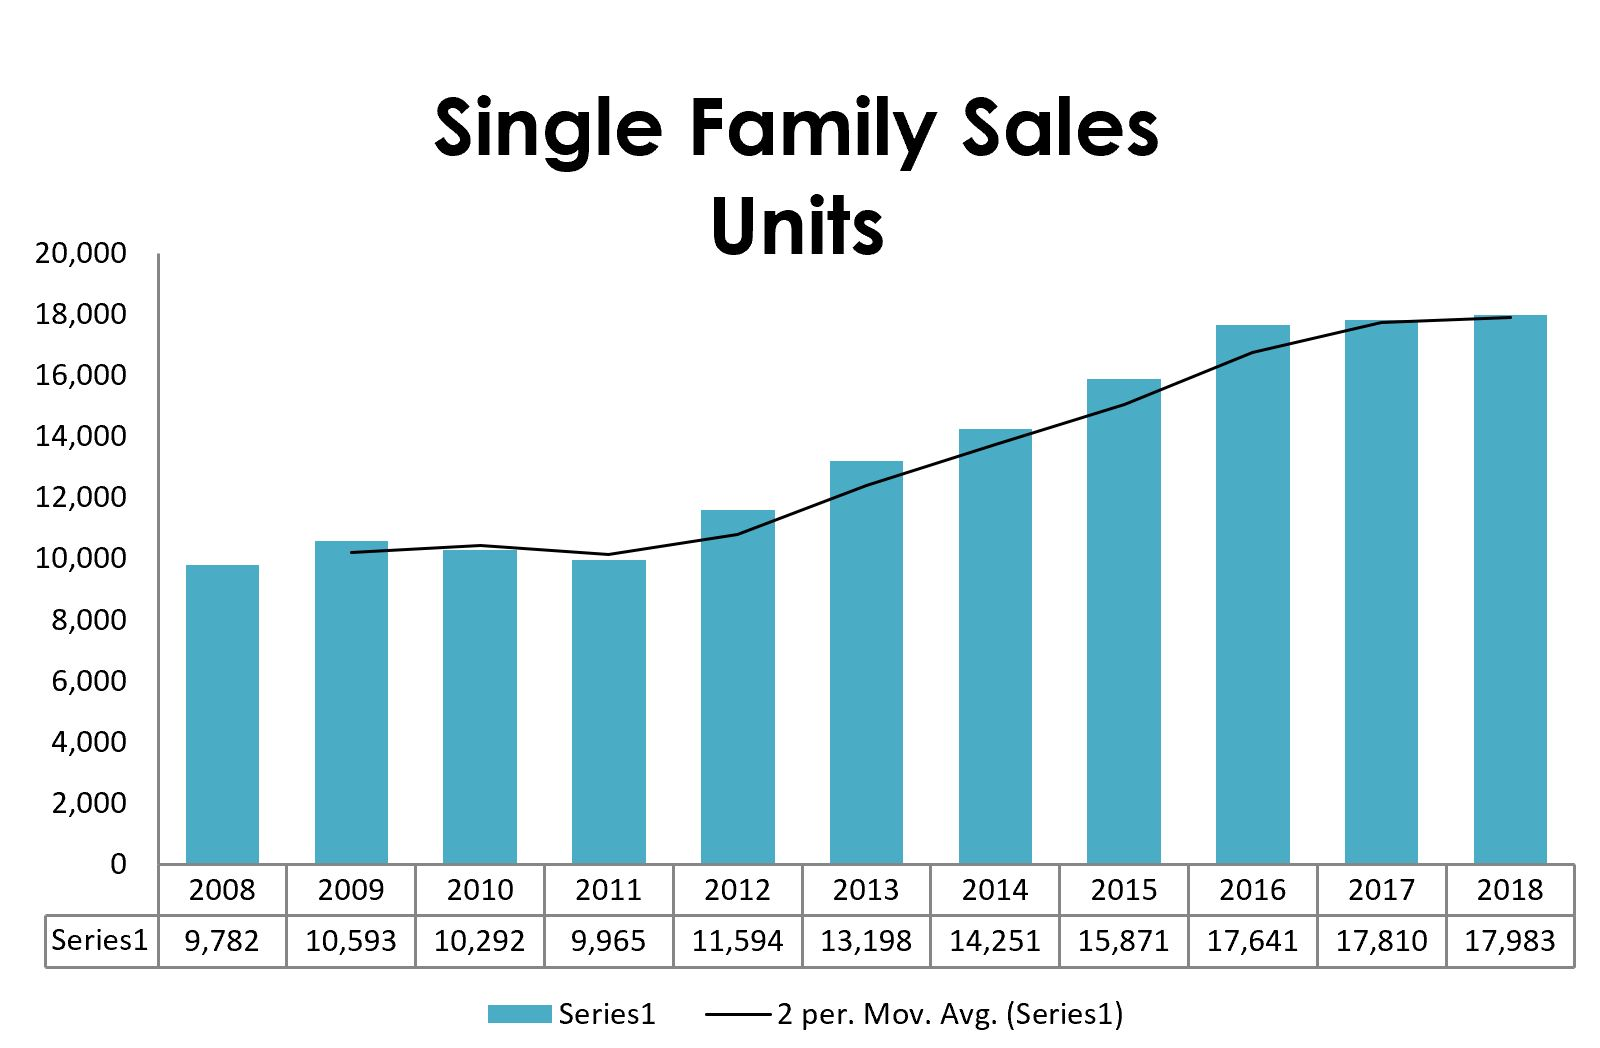 Maine Single Family Sales in 2018